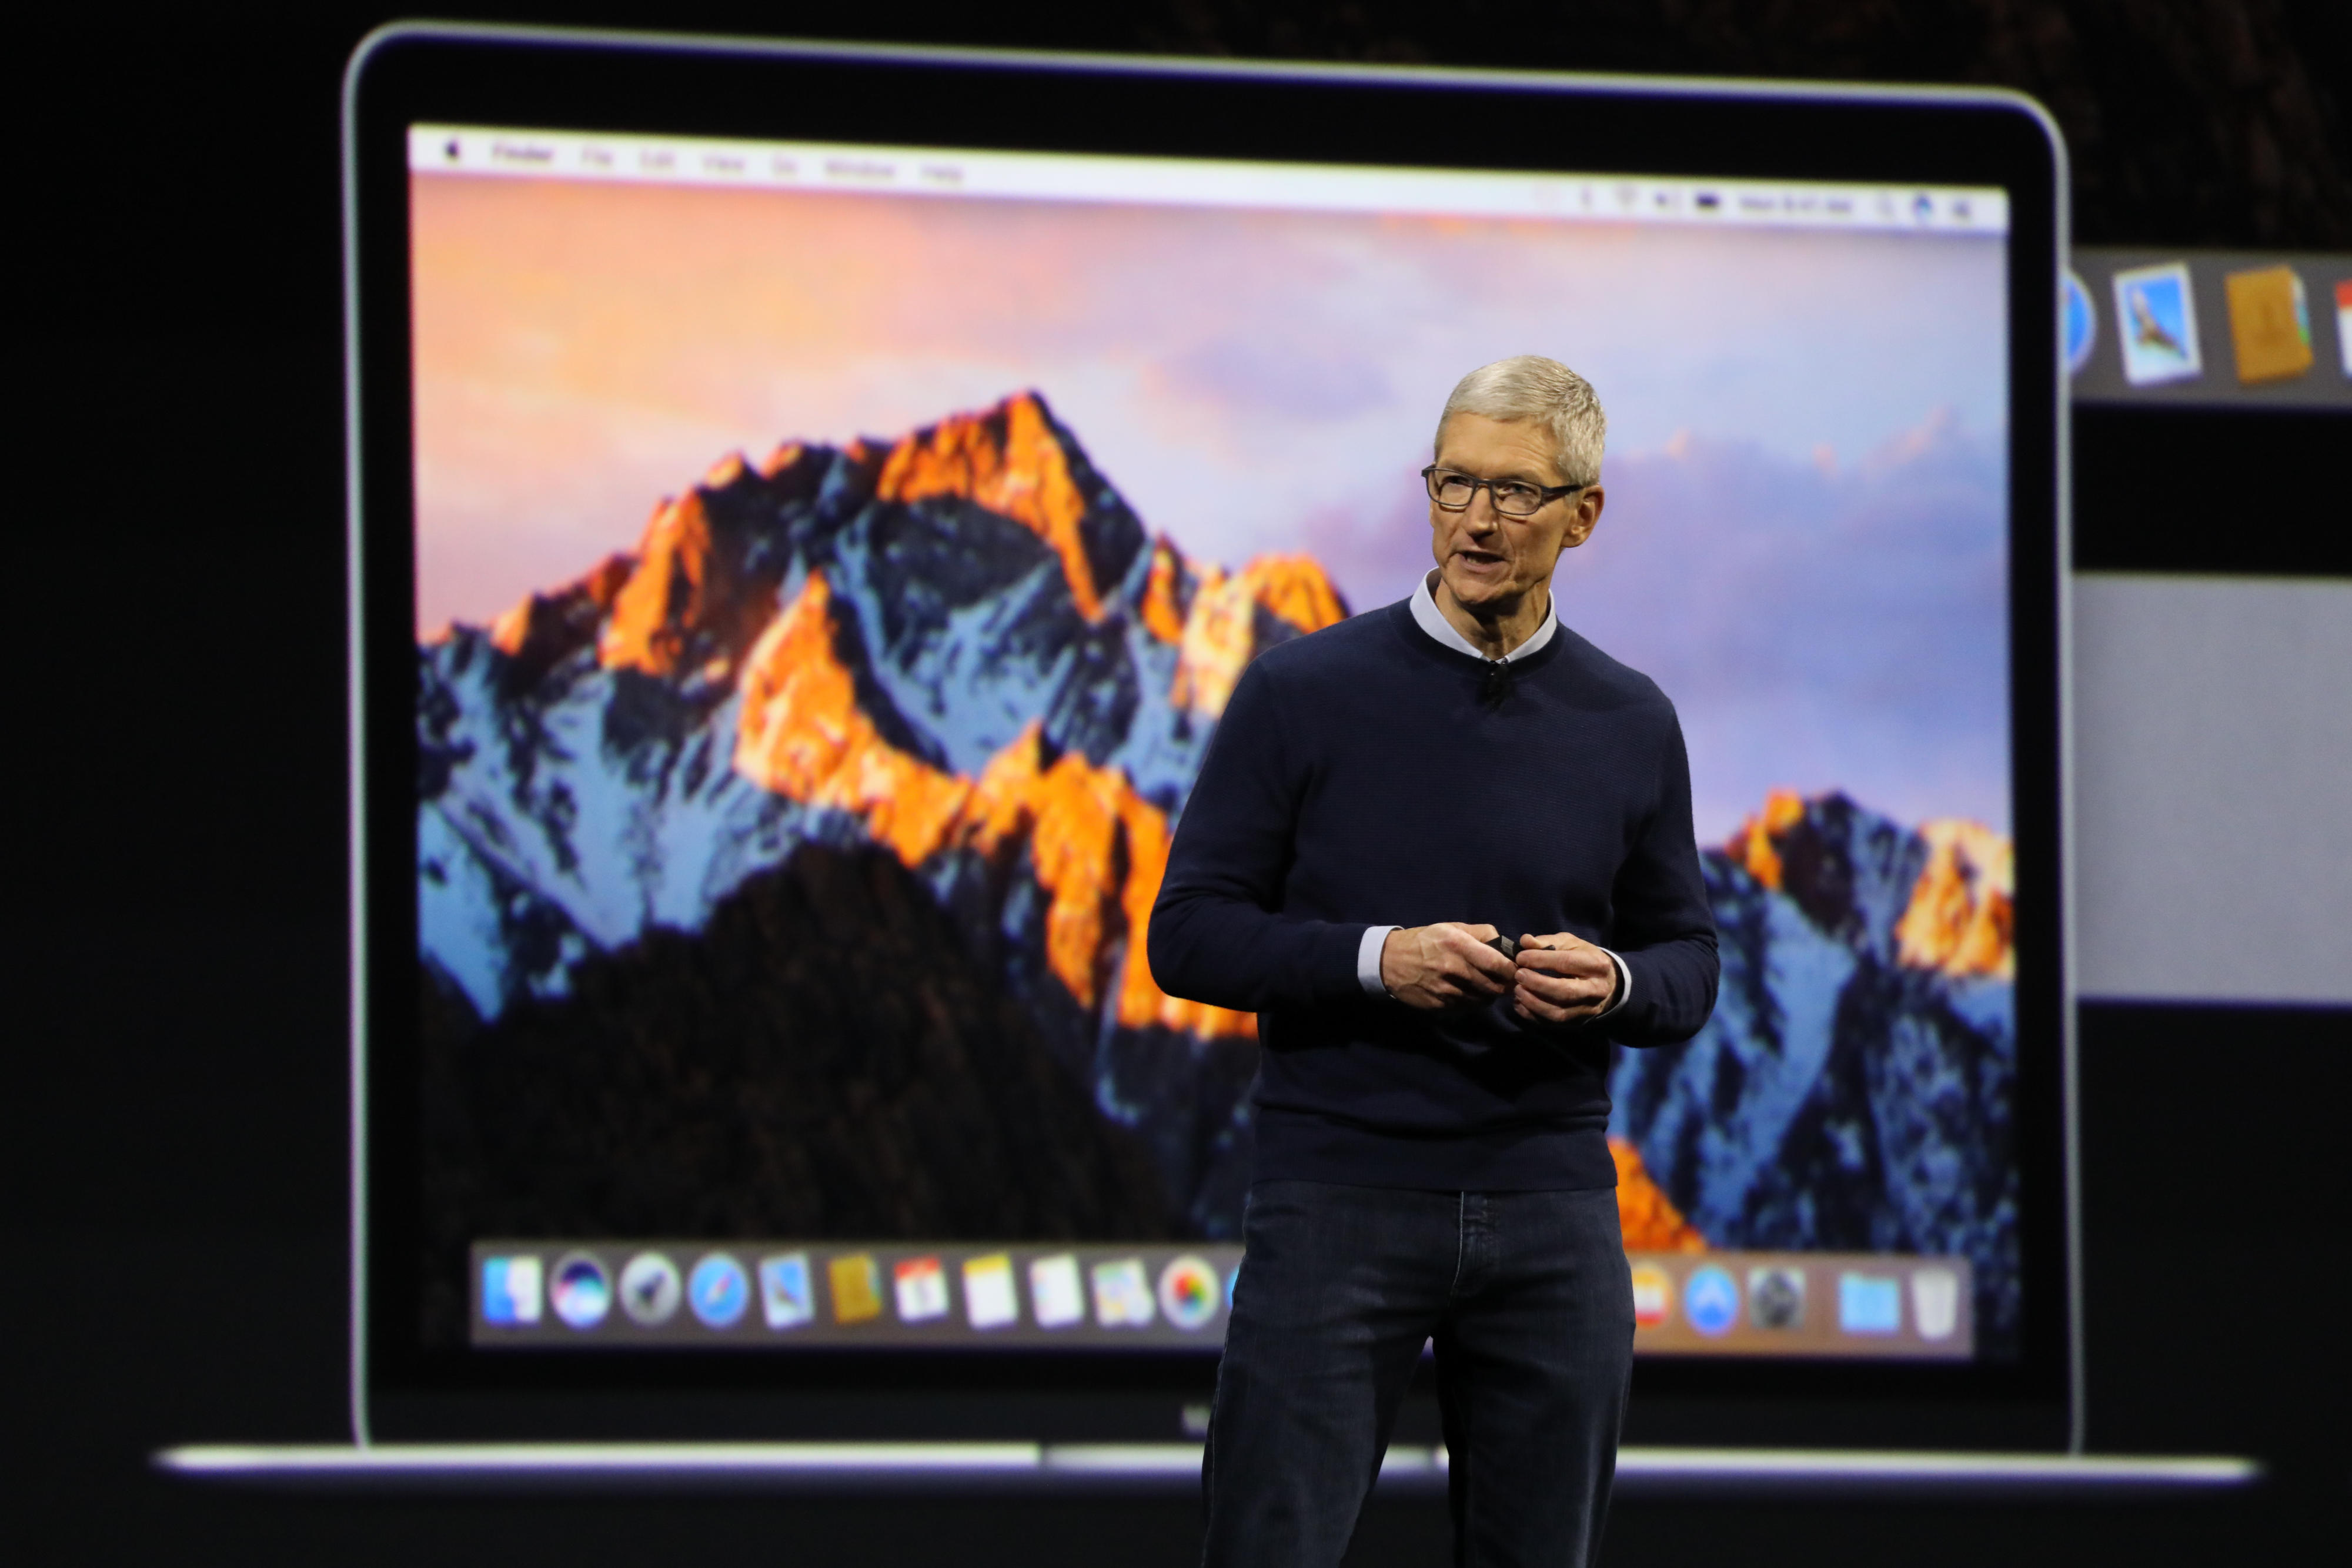 Tim Cook stands onstage at Apple's annual developer conference in 2017. On Wednesday, the company patched the Sierra and El Capitan operating systems against the Meltdown security flaw.